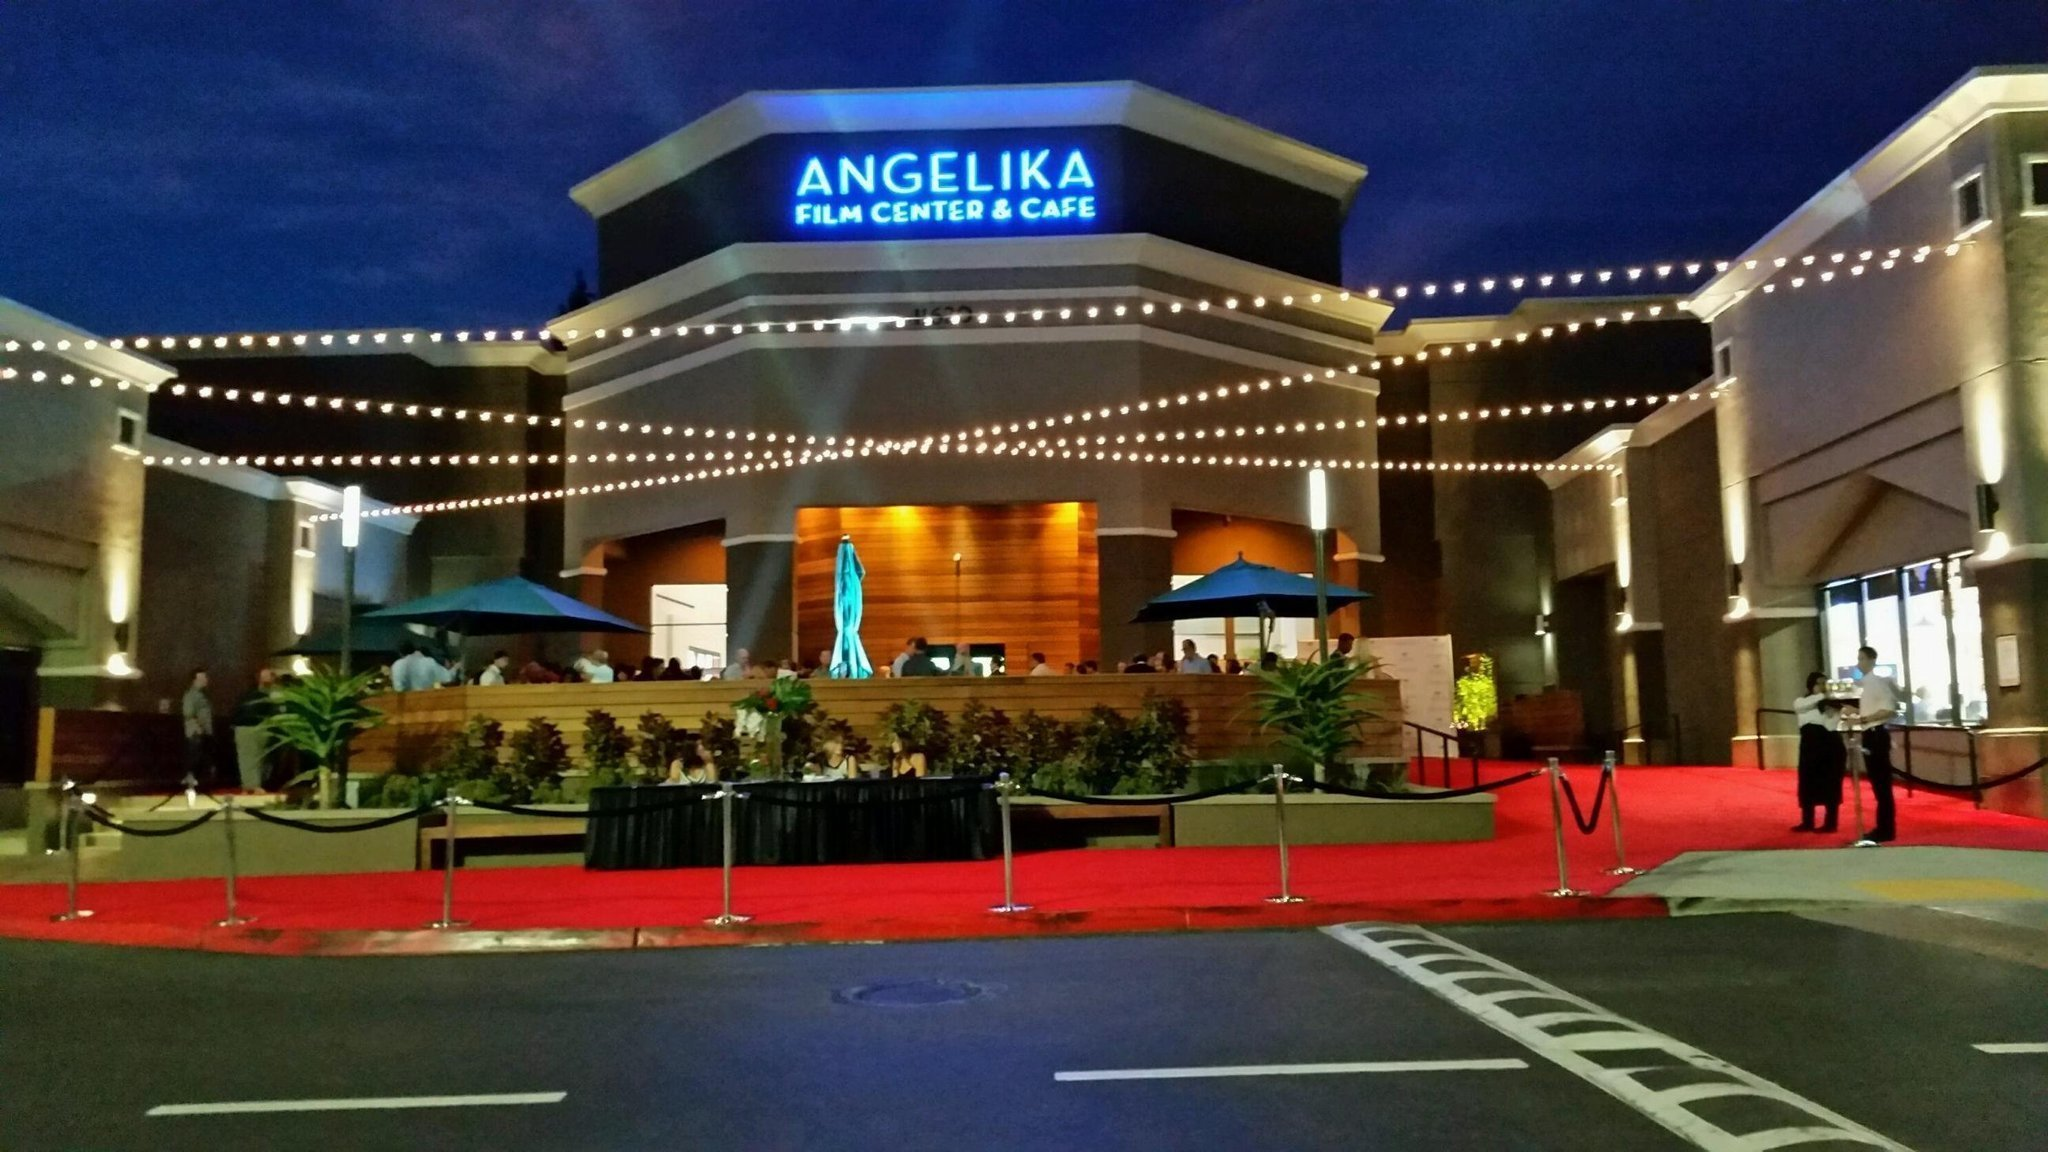 The angelica movie theater